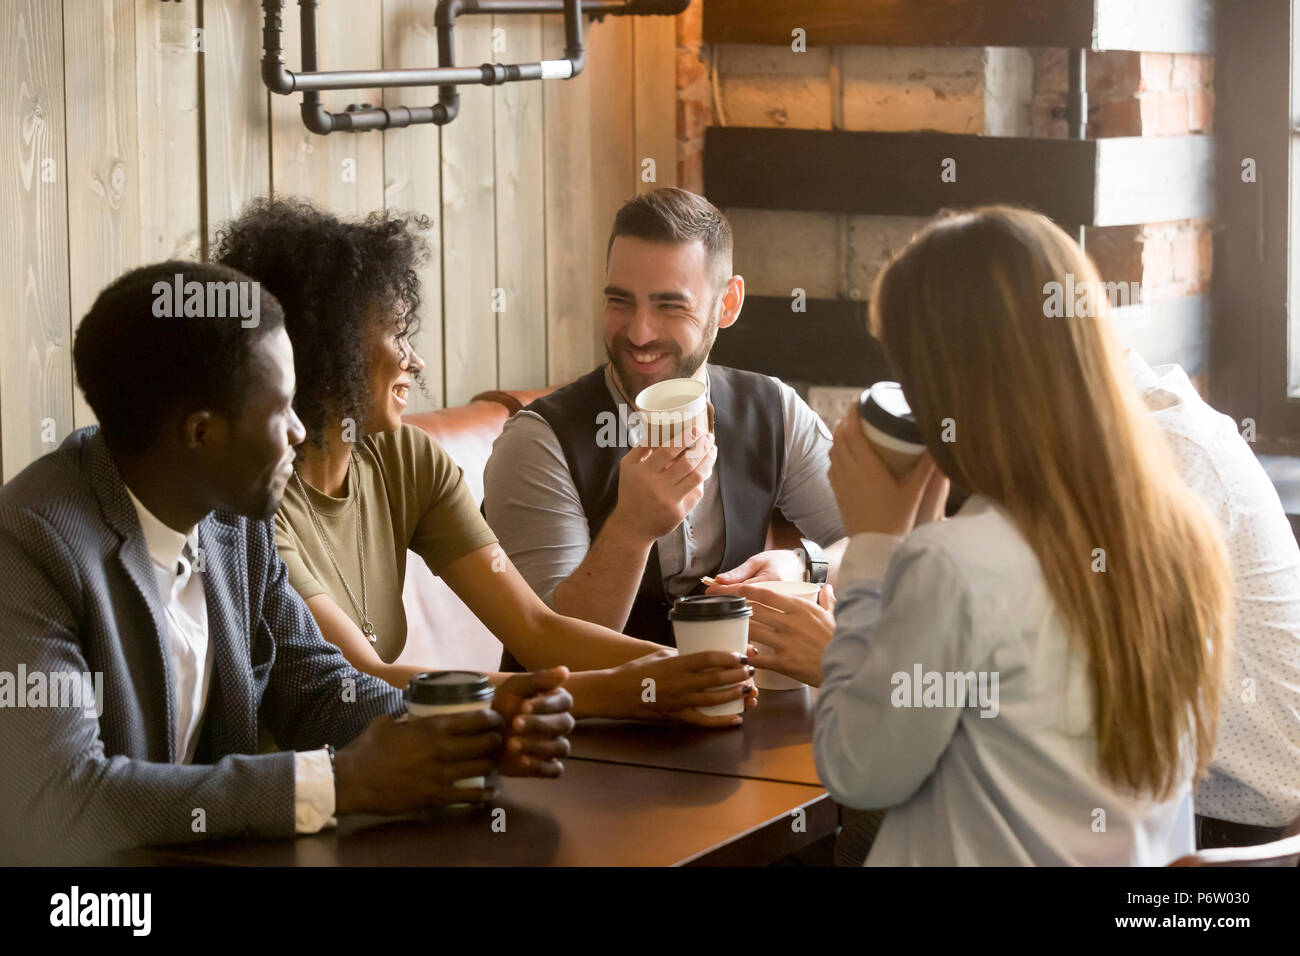 Smiling friends enjoying time together having coffee in cafe - Stock Image